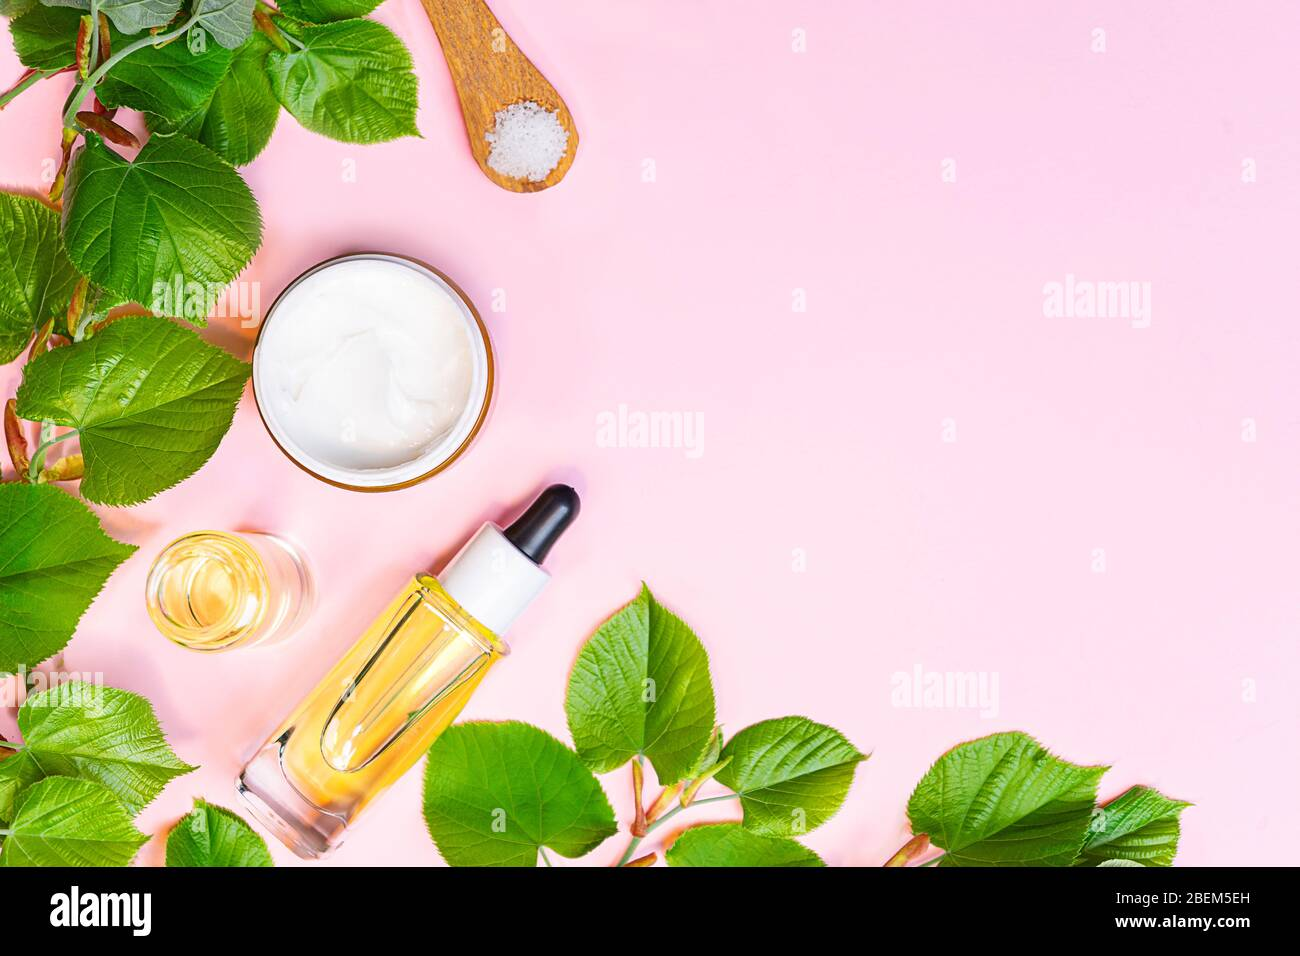 Skin Care Products Natural Cosmetic Flat Lay Image On Pink Background Natural Cosmetic Skincare Bottle Serum And Organic Green Leaf Homemade And Beauty Product Concept Stock Photo Alamy